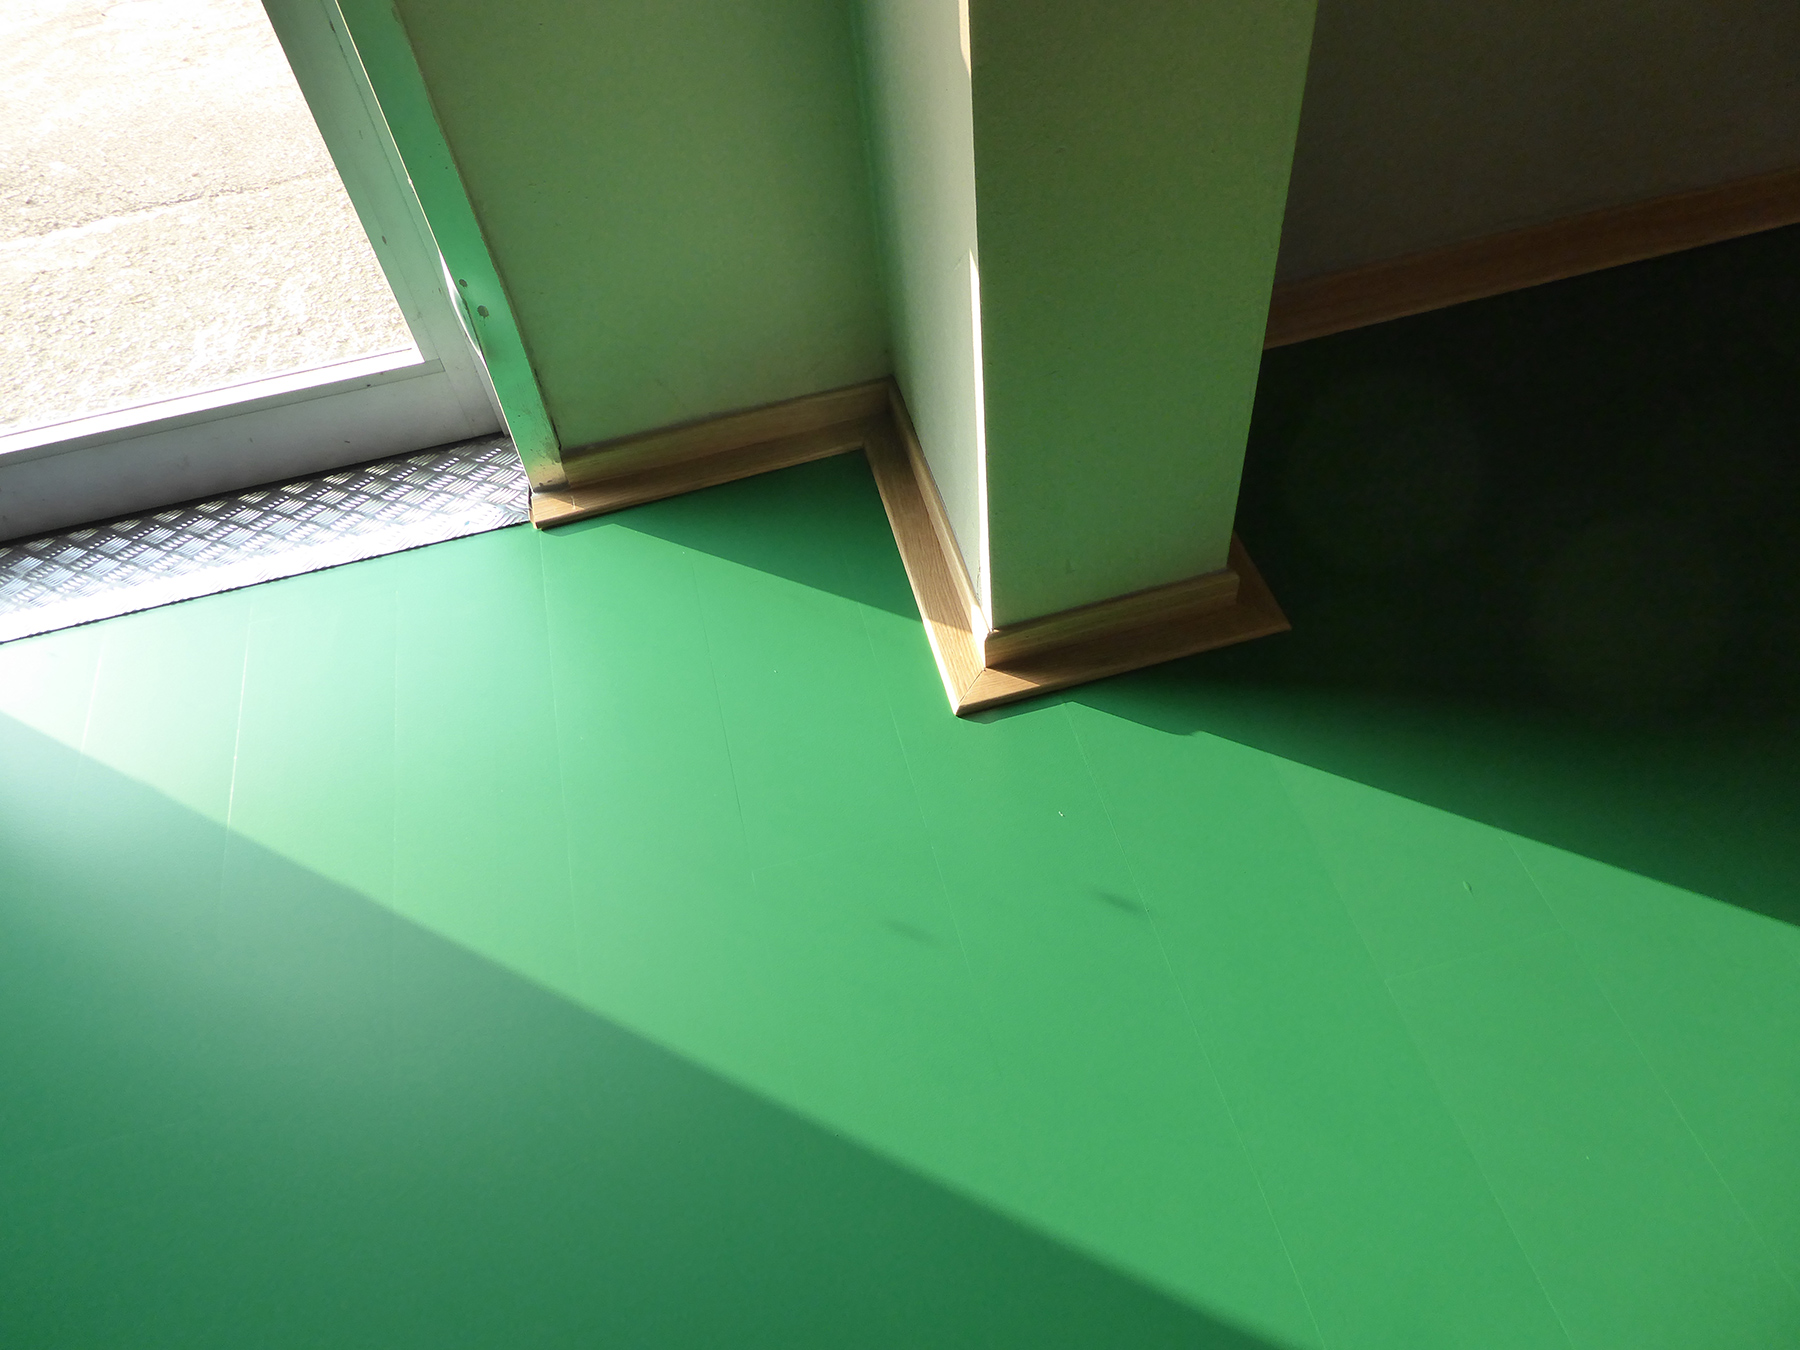 Skirting care, a detail that is not negligible